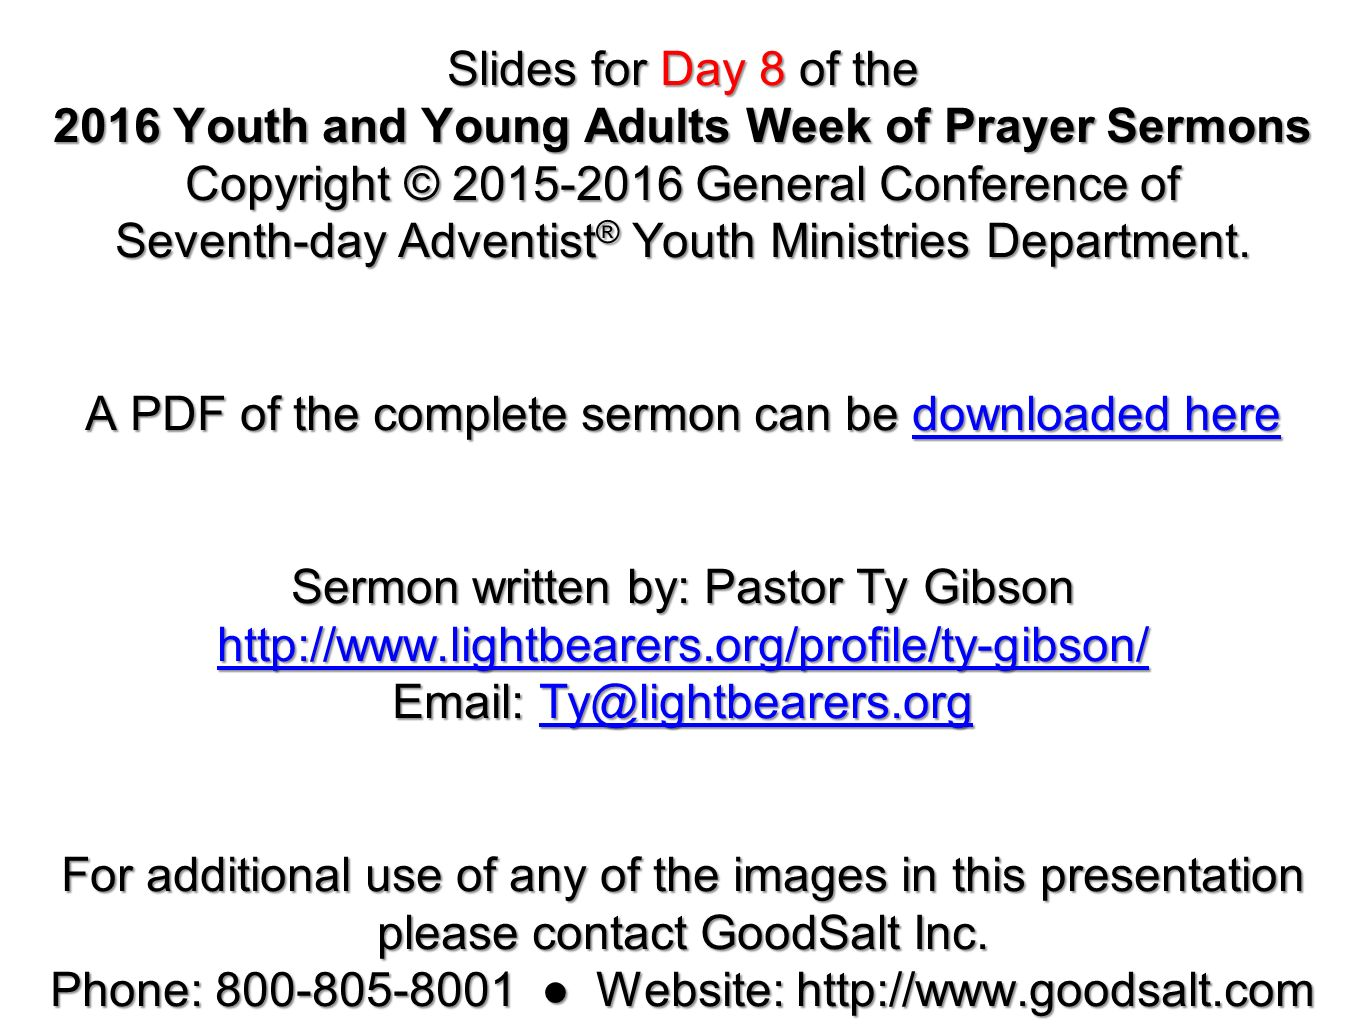 Slides for Day 8 of the 2016 Youth and Young Adults Week of Prayer